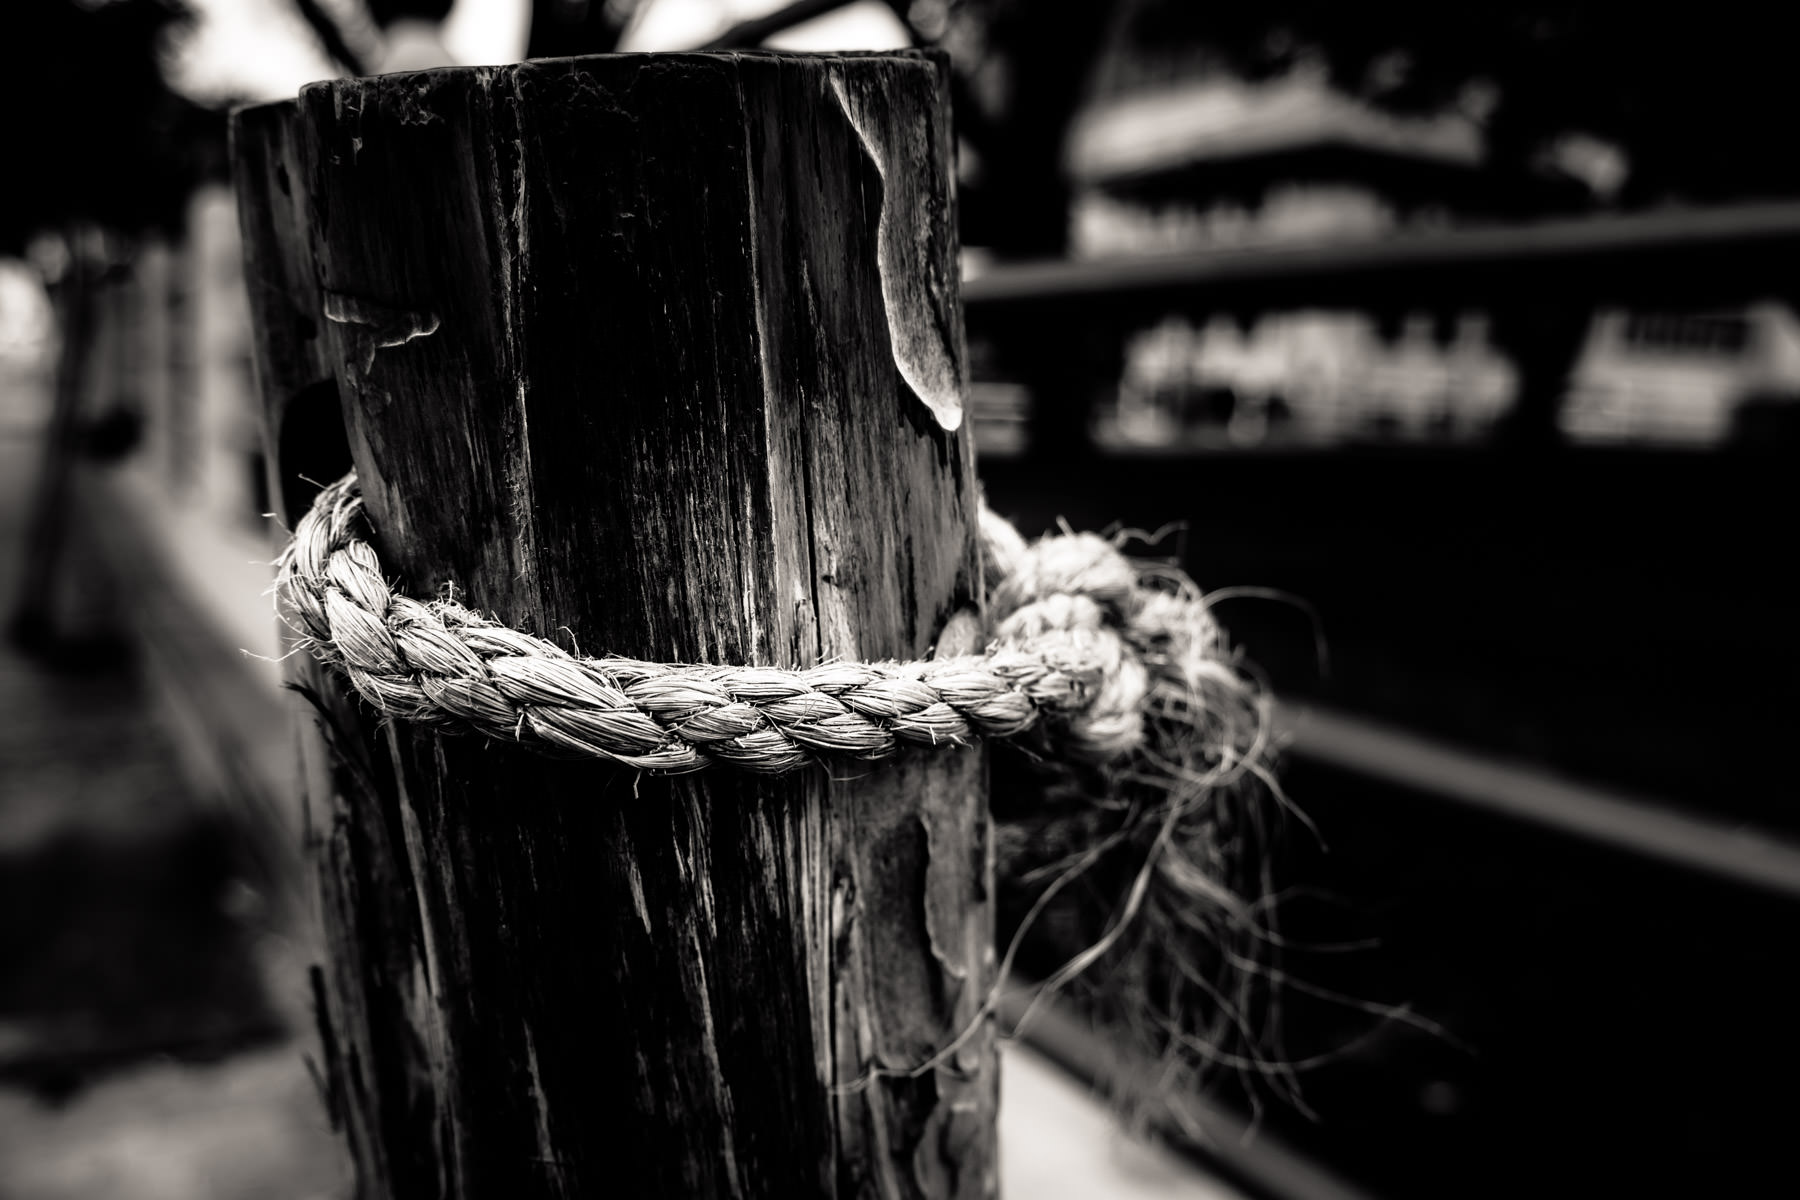 A rough rope tied around a wooden post to make a temporary fence at the Fort Worth Stockyards.